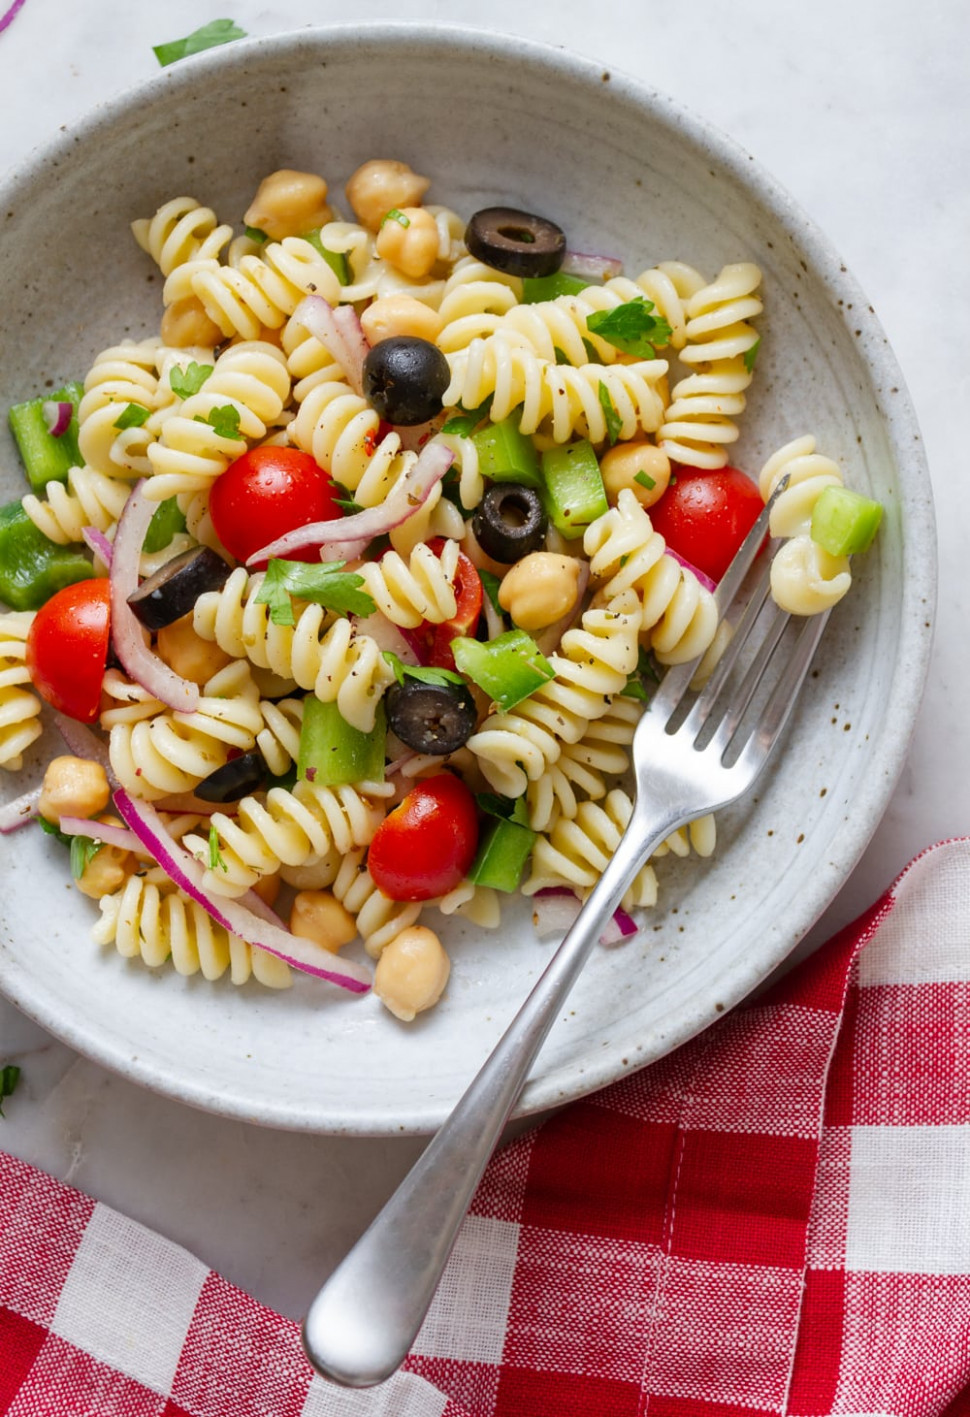 QUICK & EASY VEGAN PASTA SALAD - THE SIMPLE VEGANISTA - cheap easy kid friendly vegetarian recipes